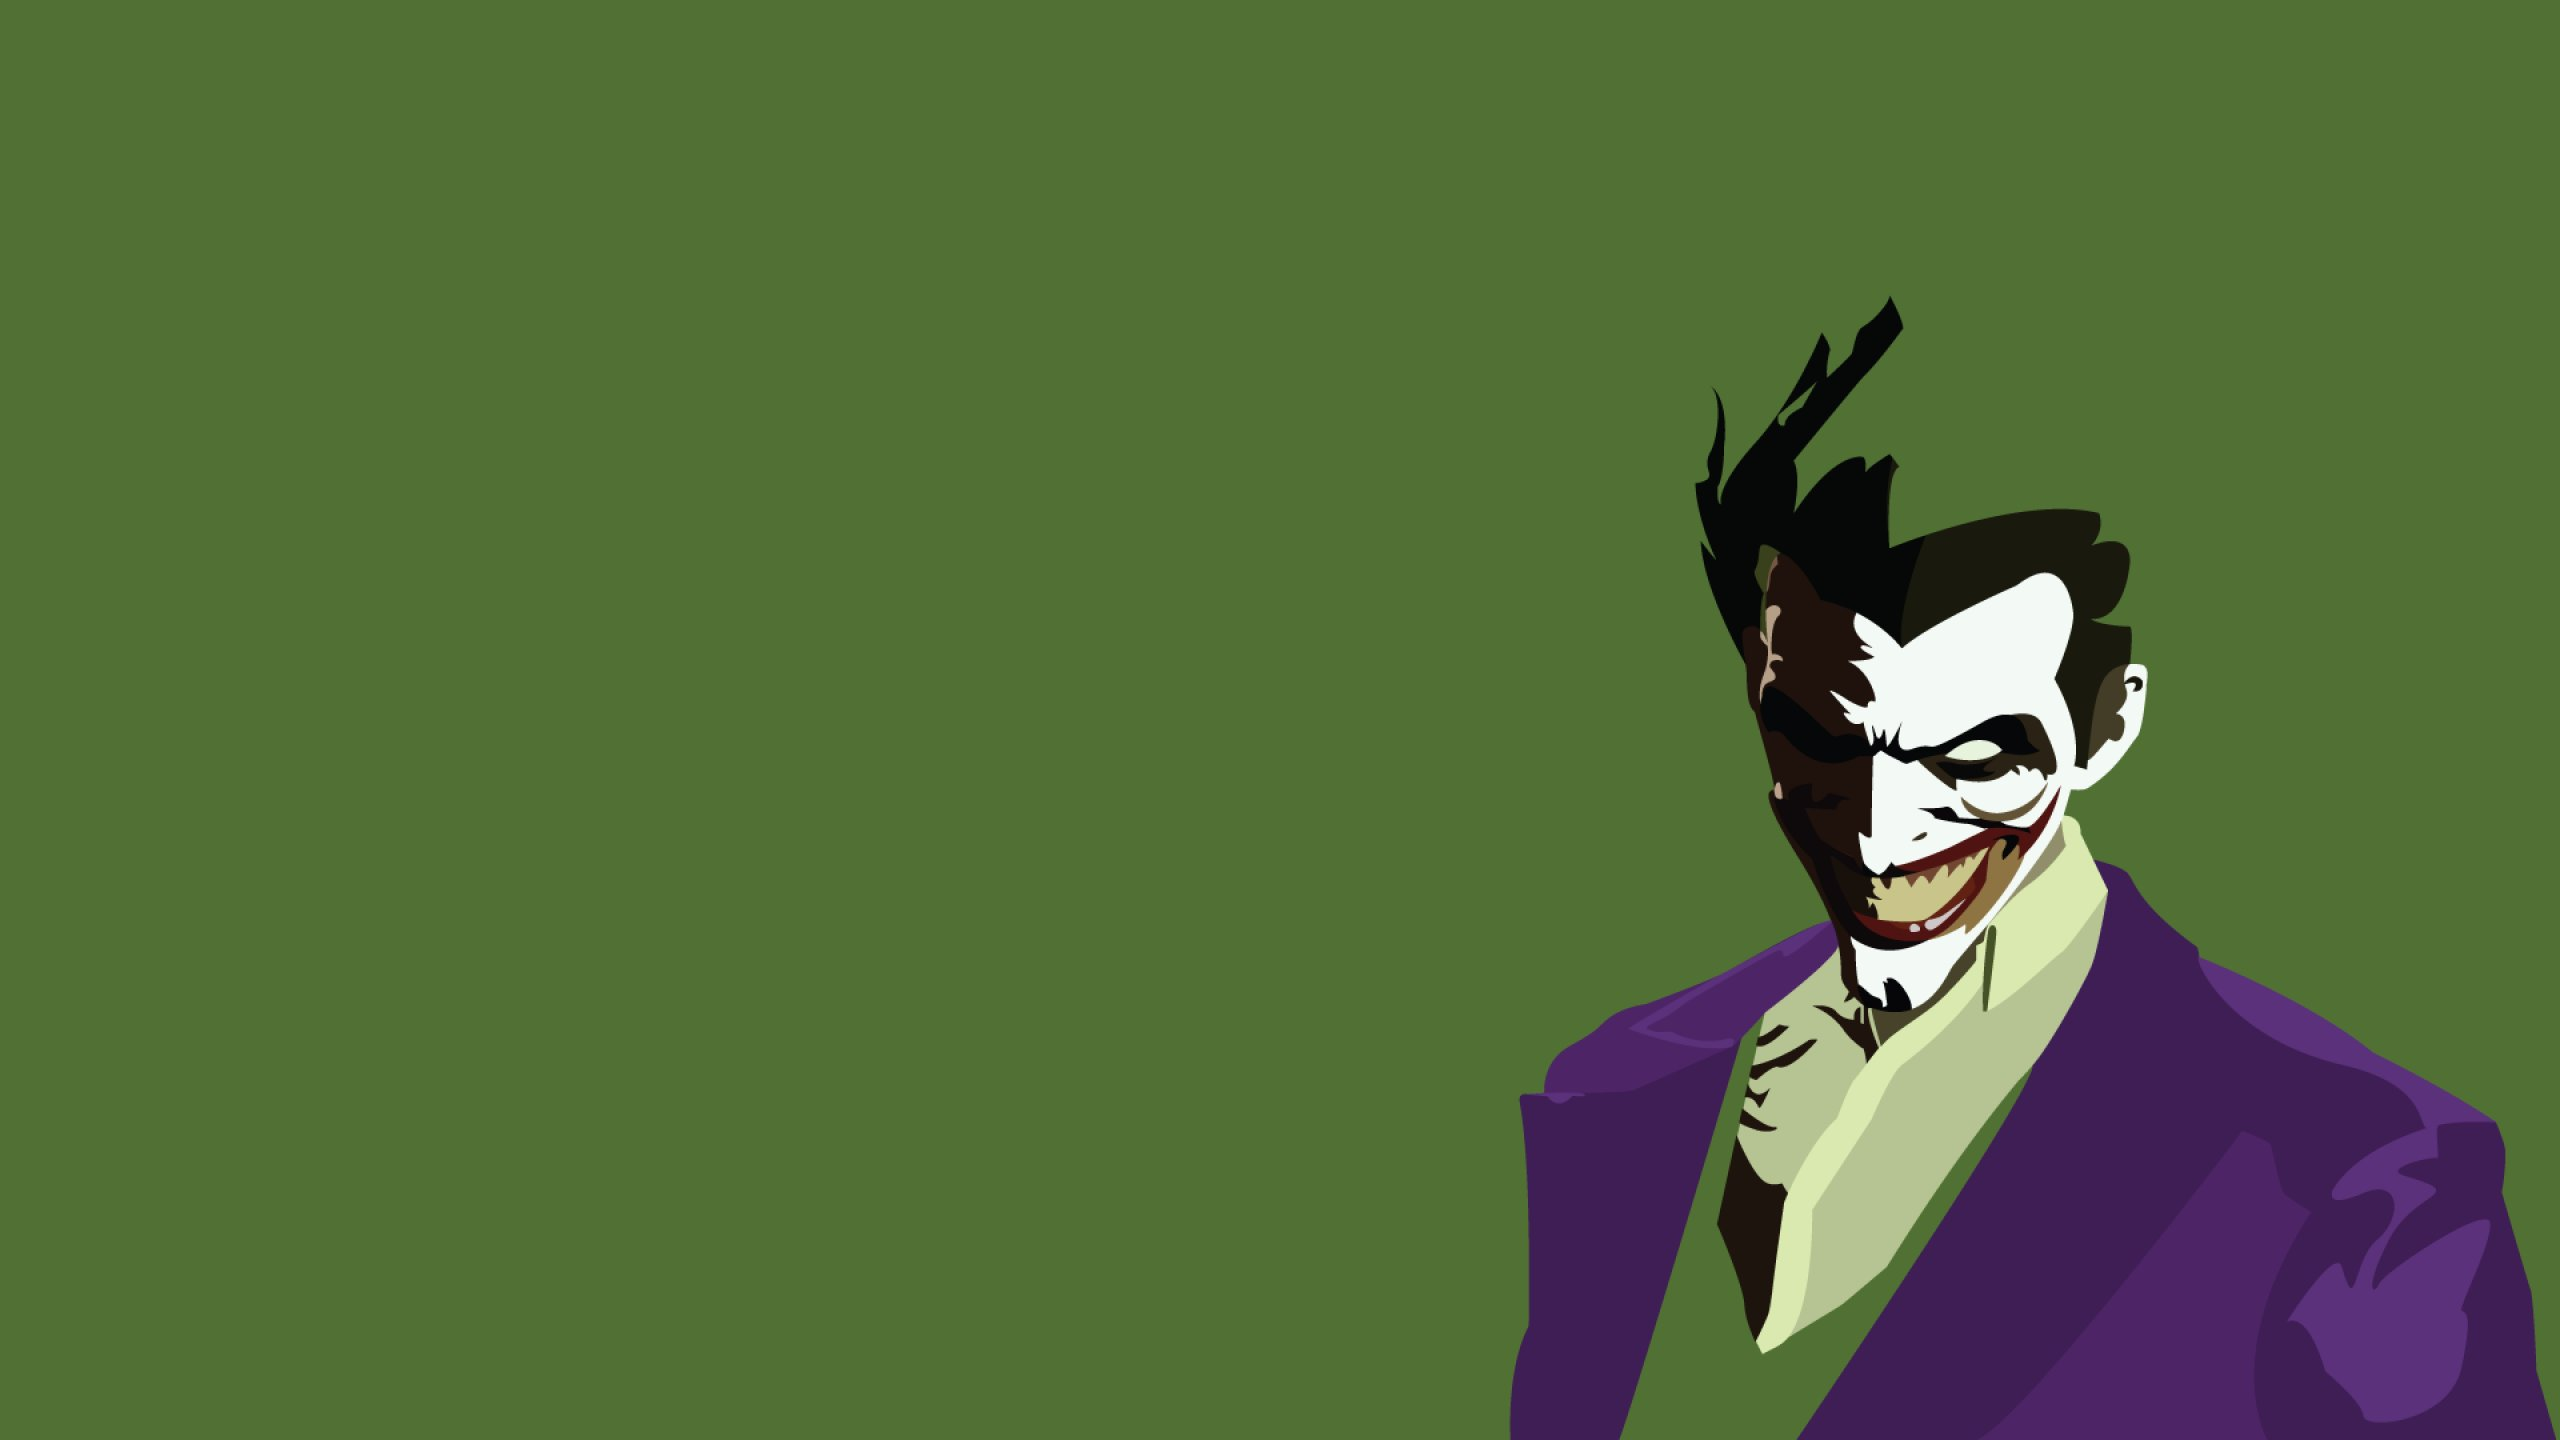 DC COMICS superhero hero warrior d c comics joker batman k 2560x1440